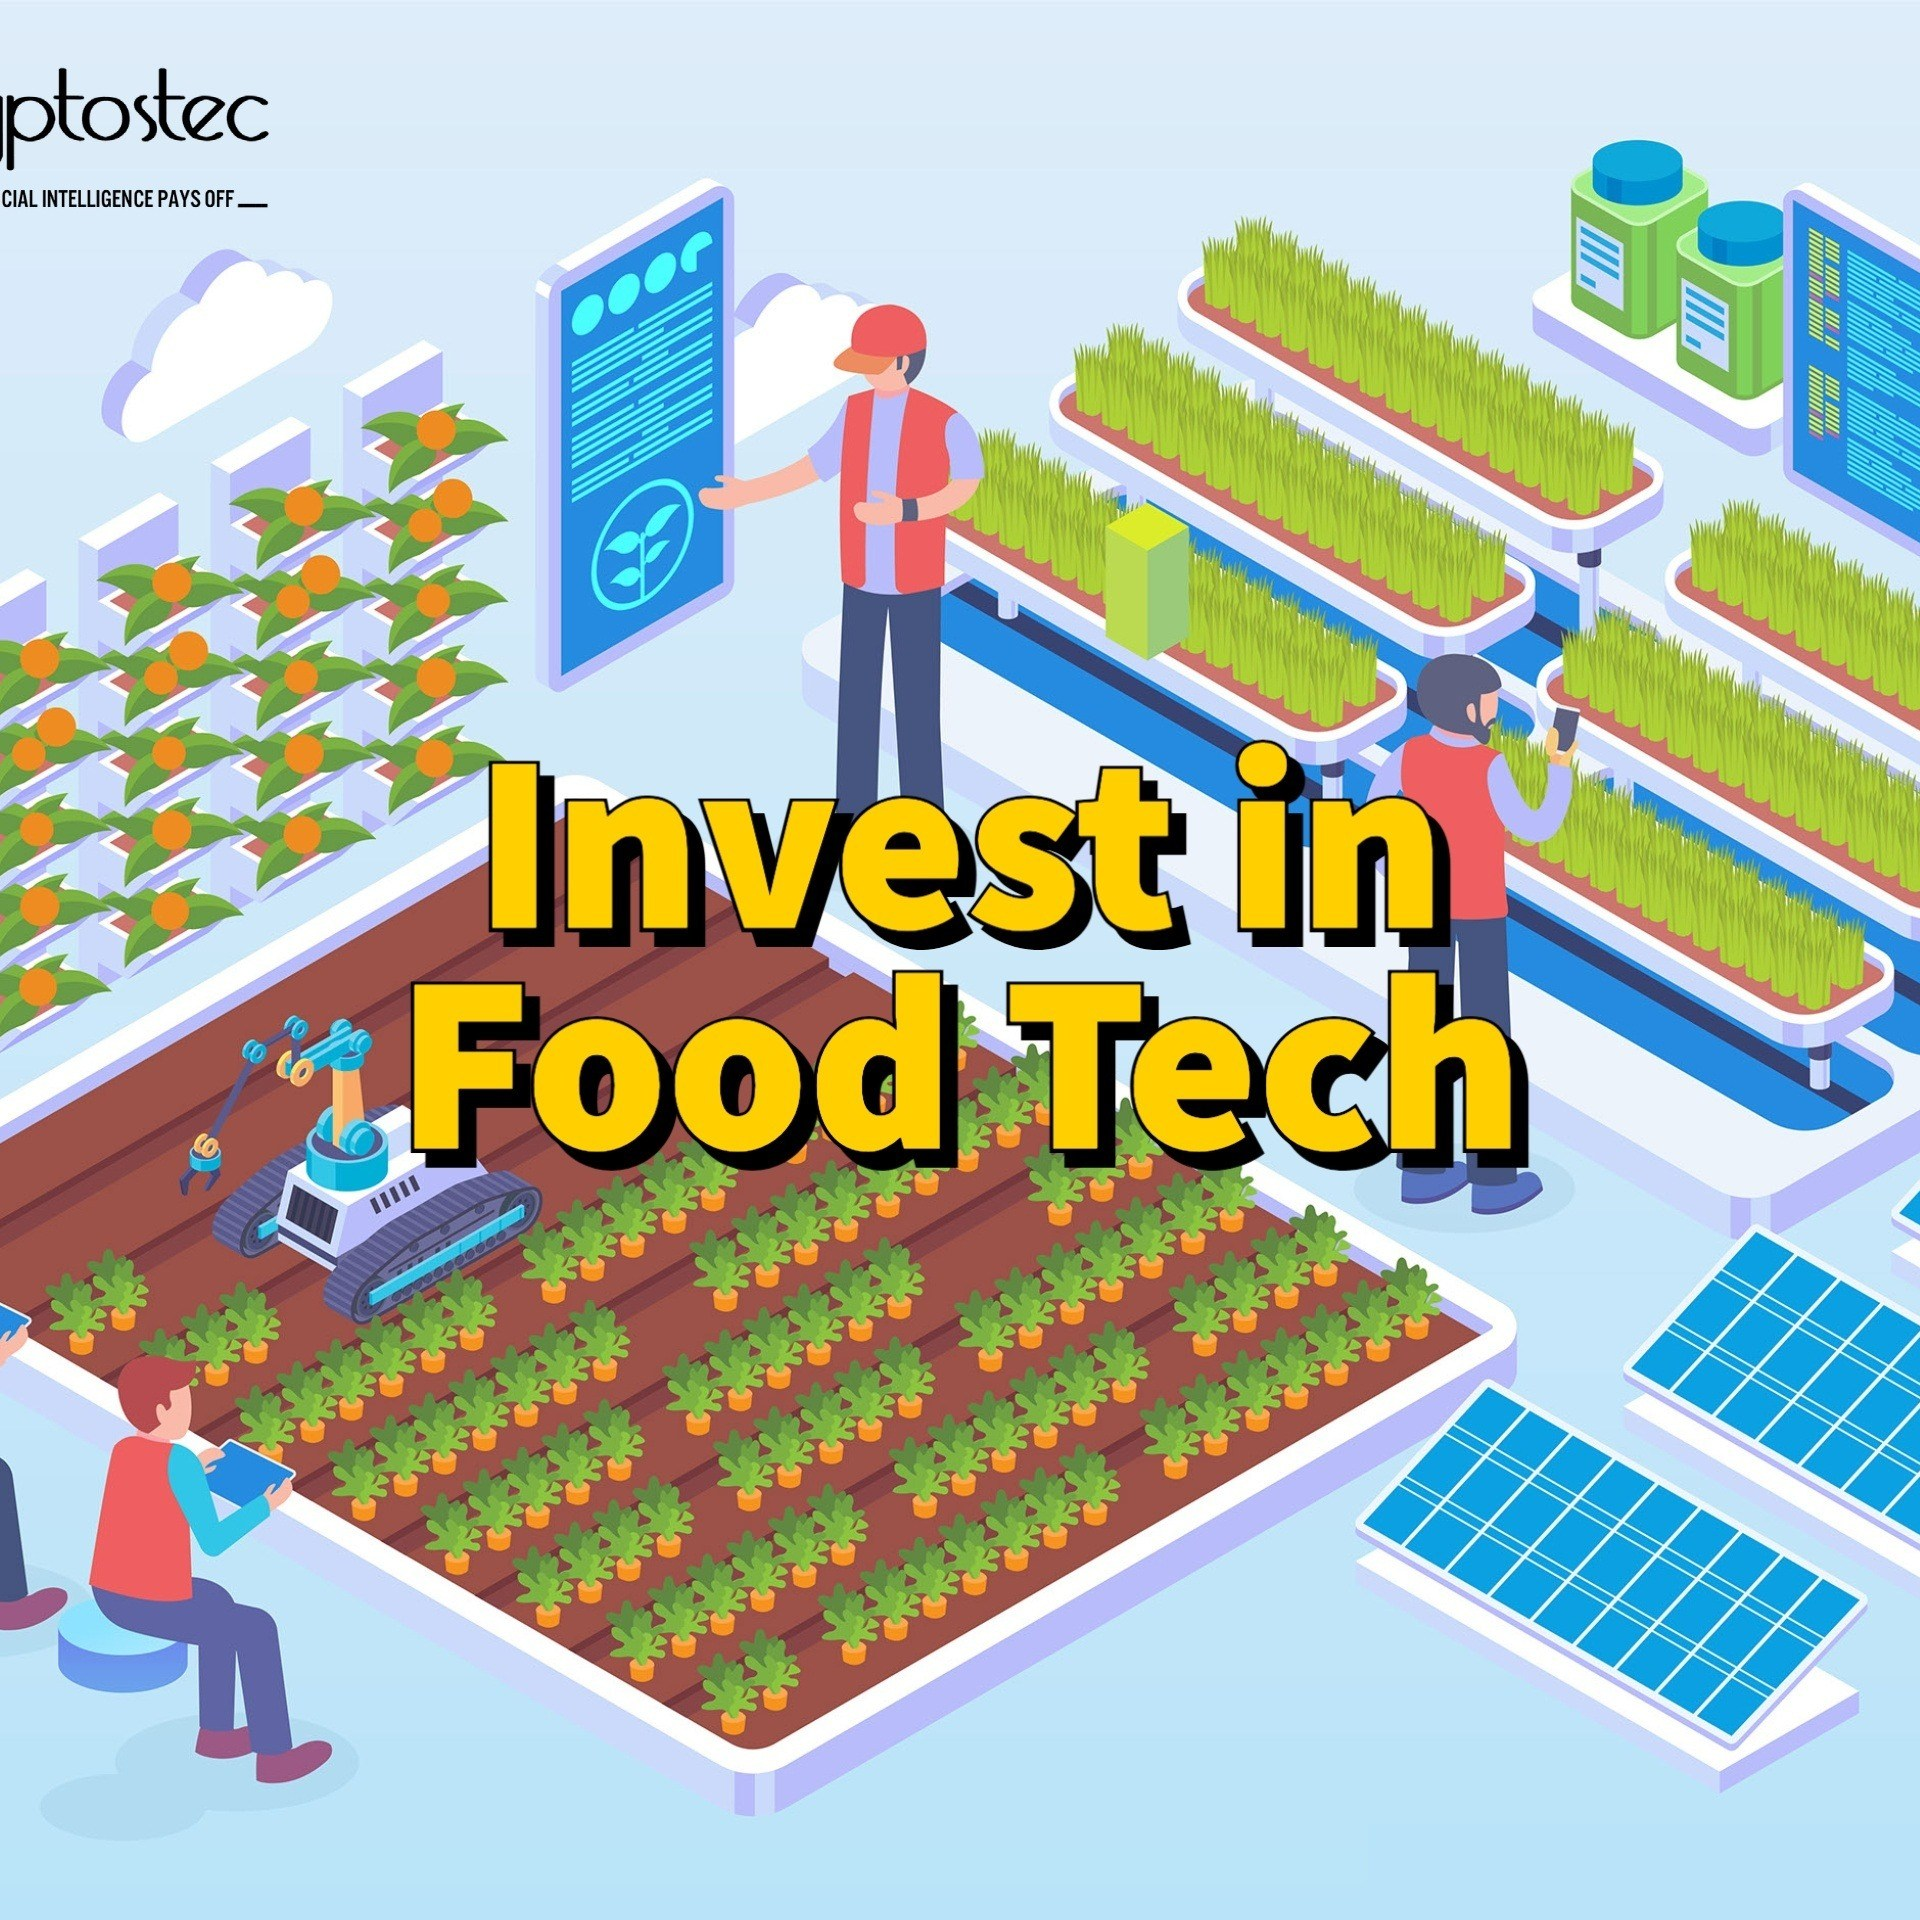 invest in food tech